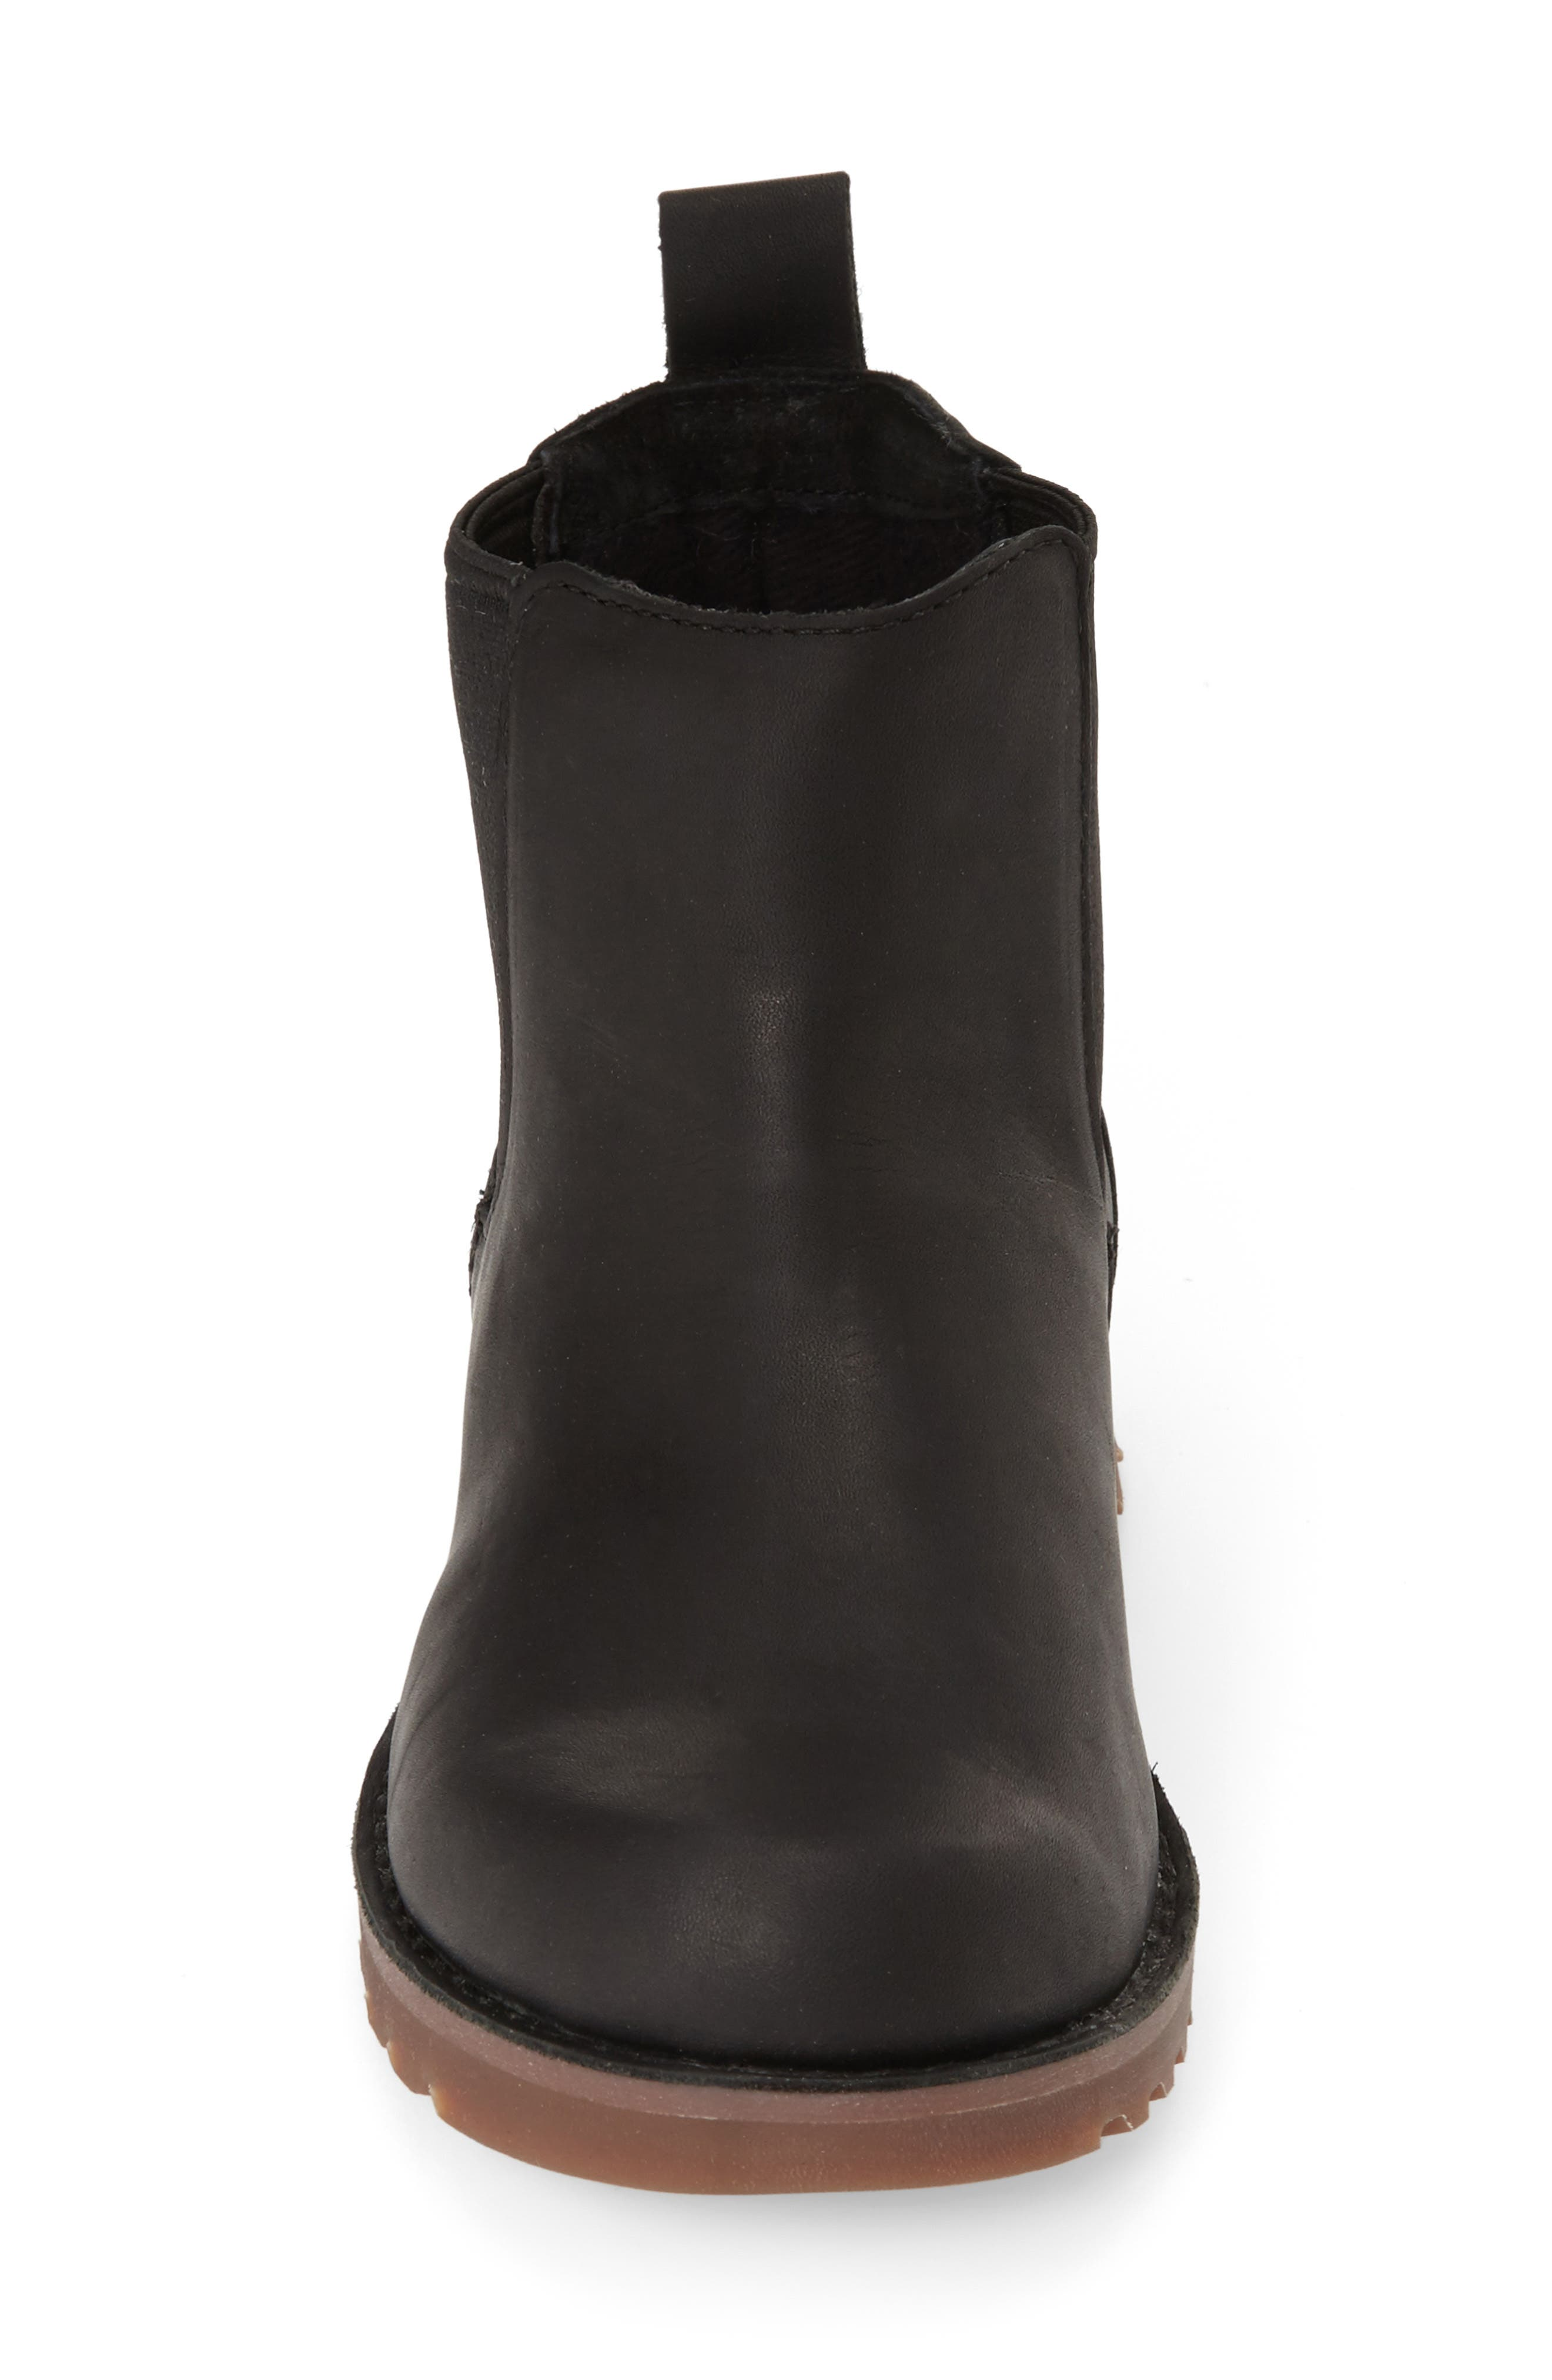 UGG<SUP>®</SUP>, Callum Water Resistant Chelsea Boot, Alternate thumbnail 2, color, BLACK/ BLACK